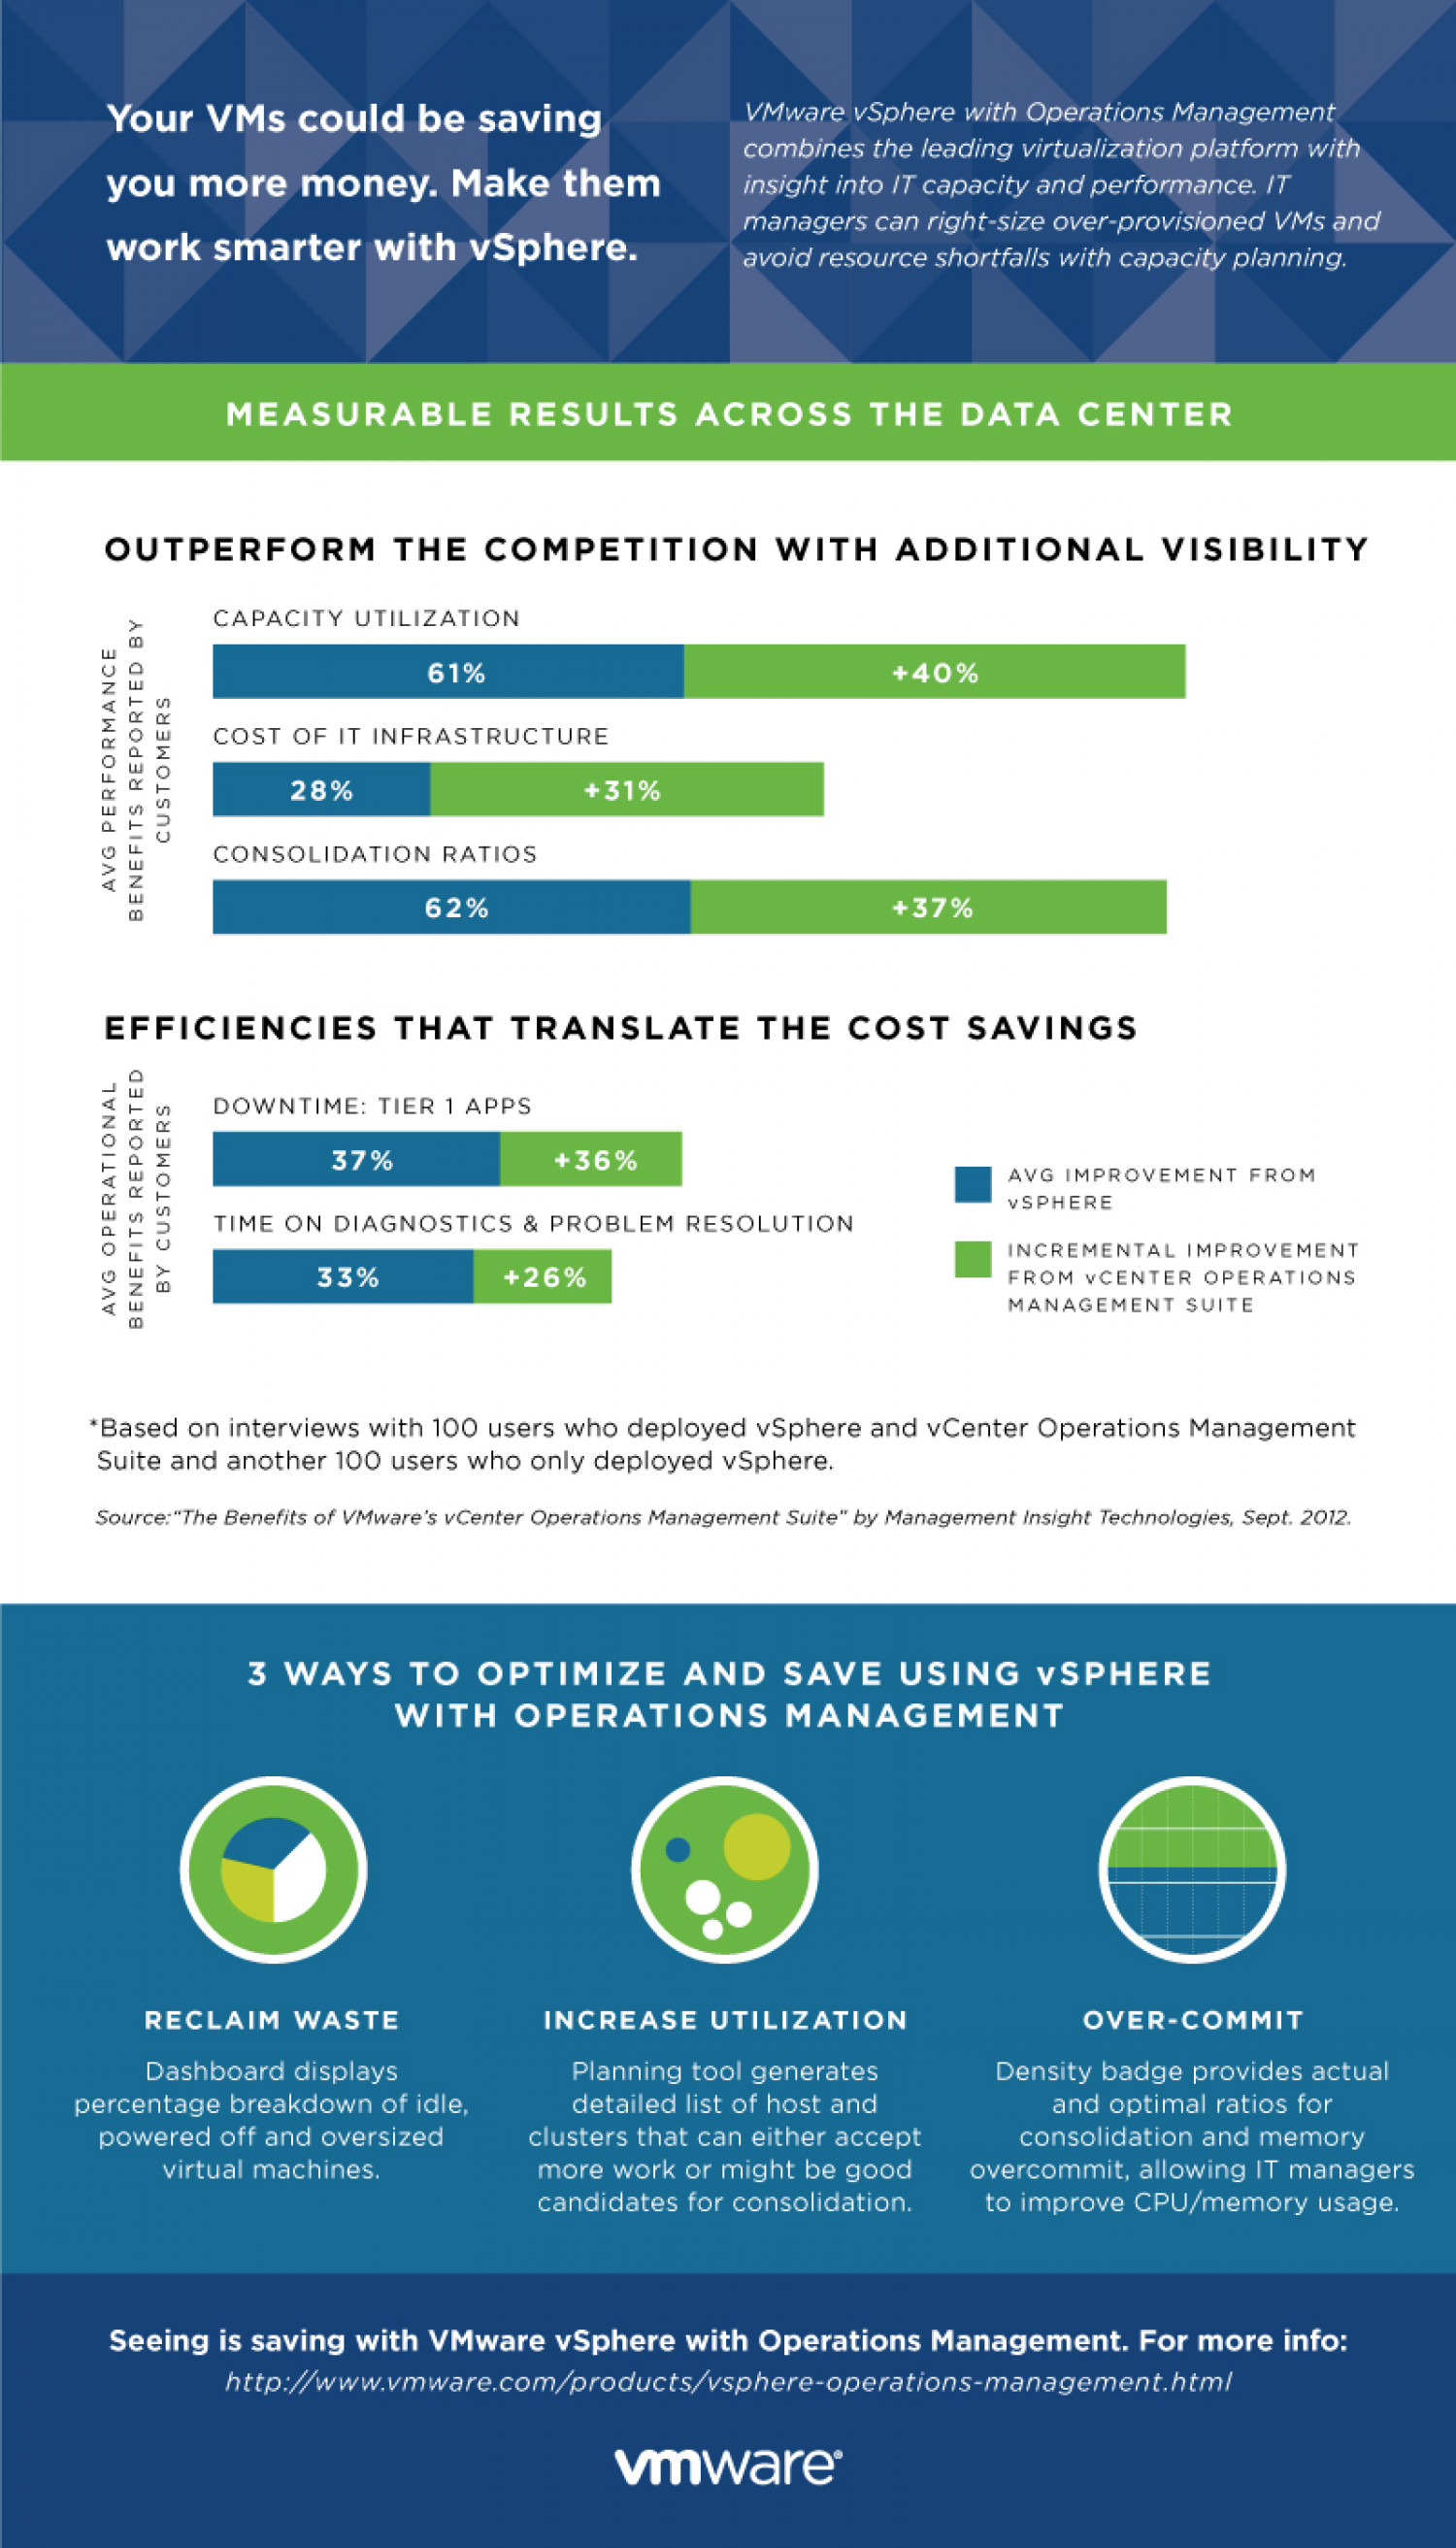 Your VMs Could Be Saving You More Money. Make Them Work Smarter with vSphere Infographic